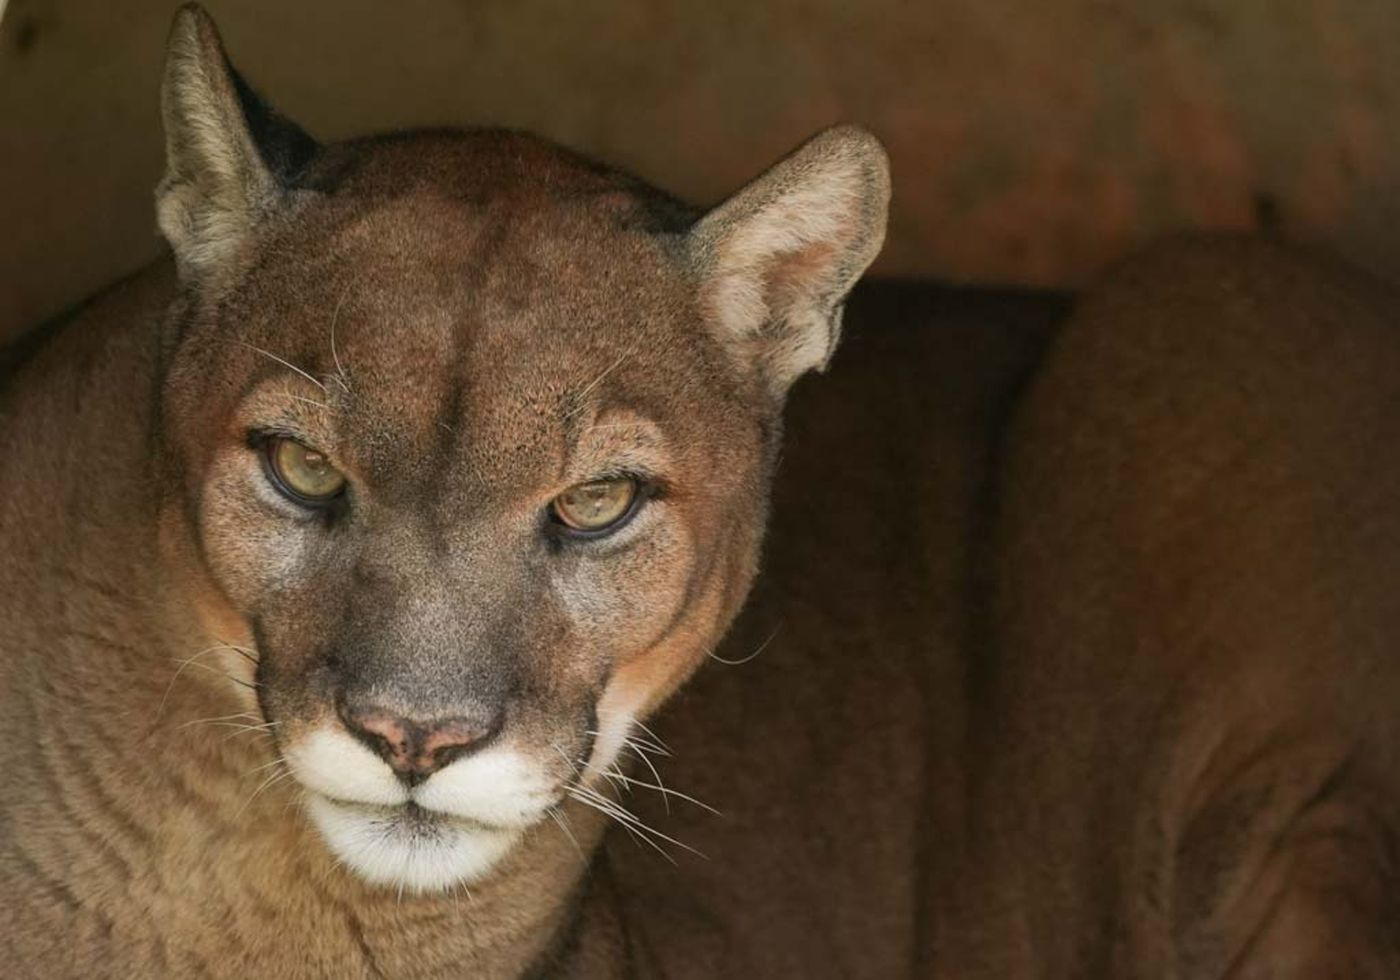 Spotting mountain lions is becoming a Pennsylvania pastime ...